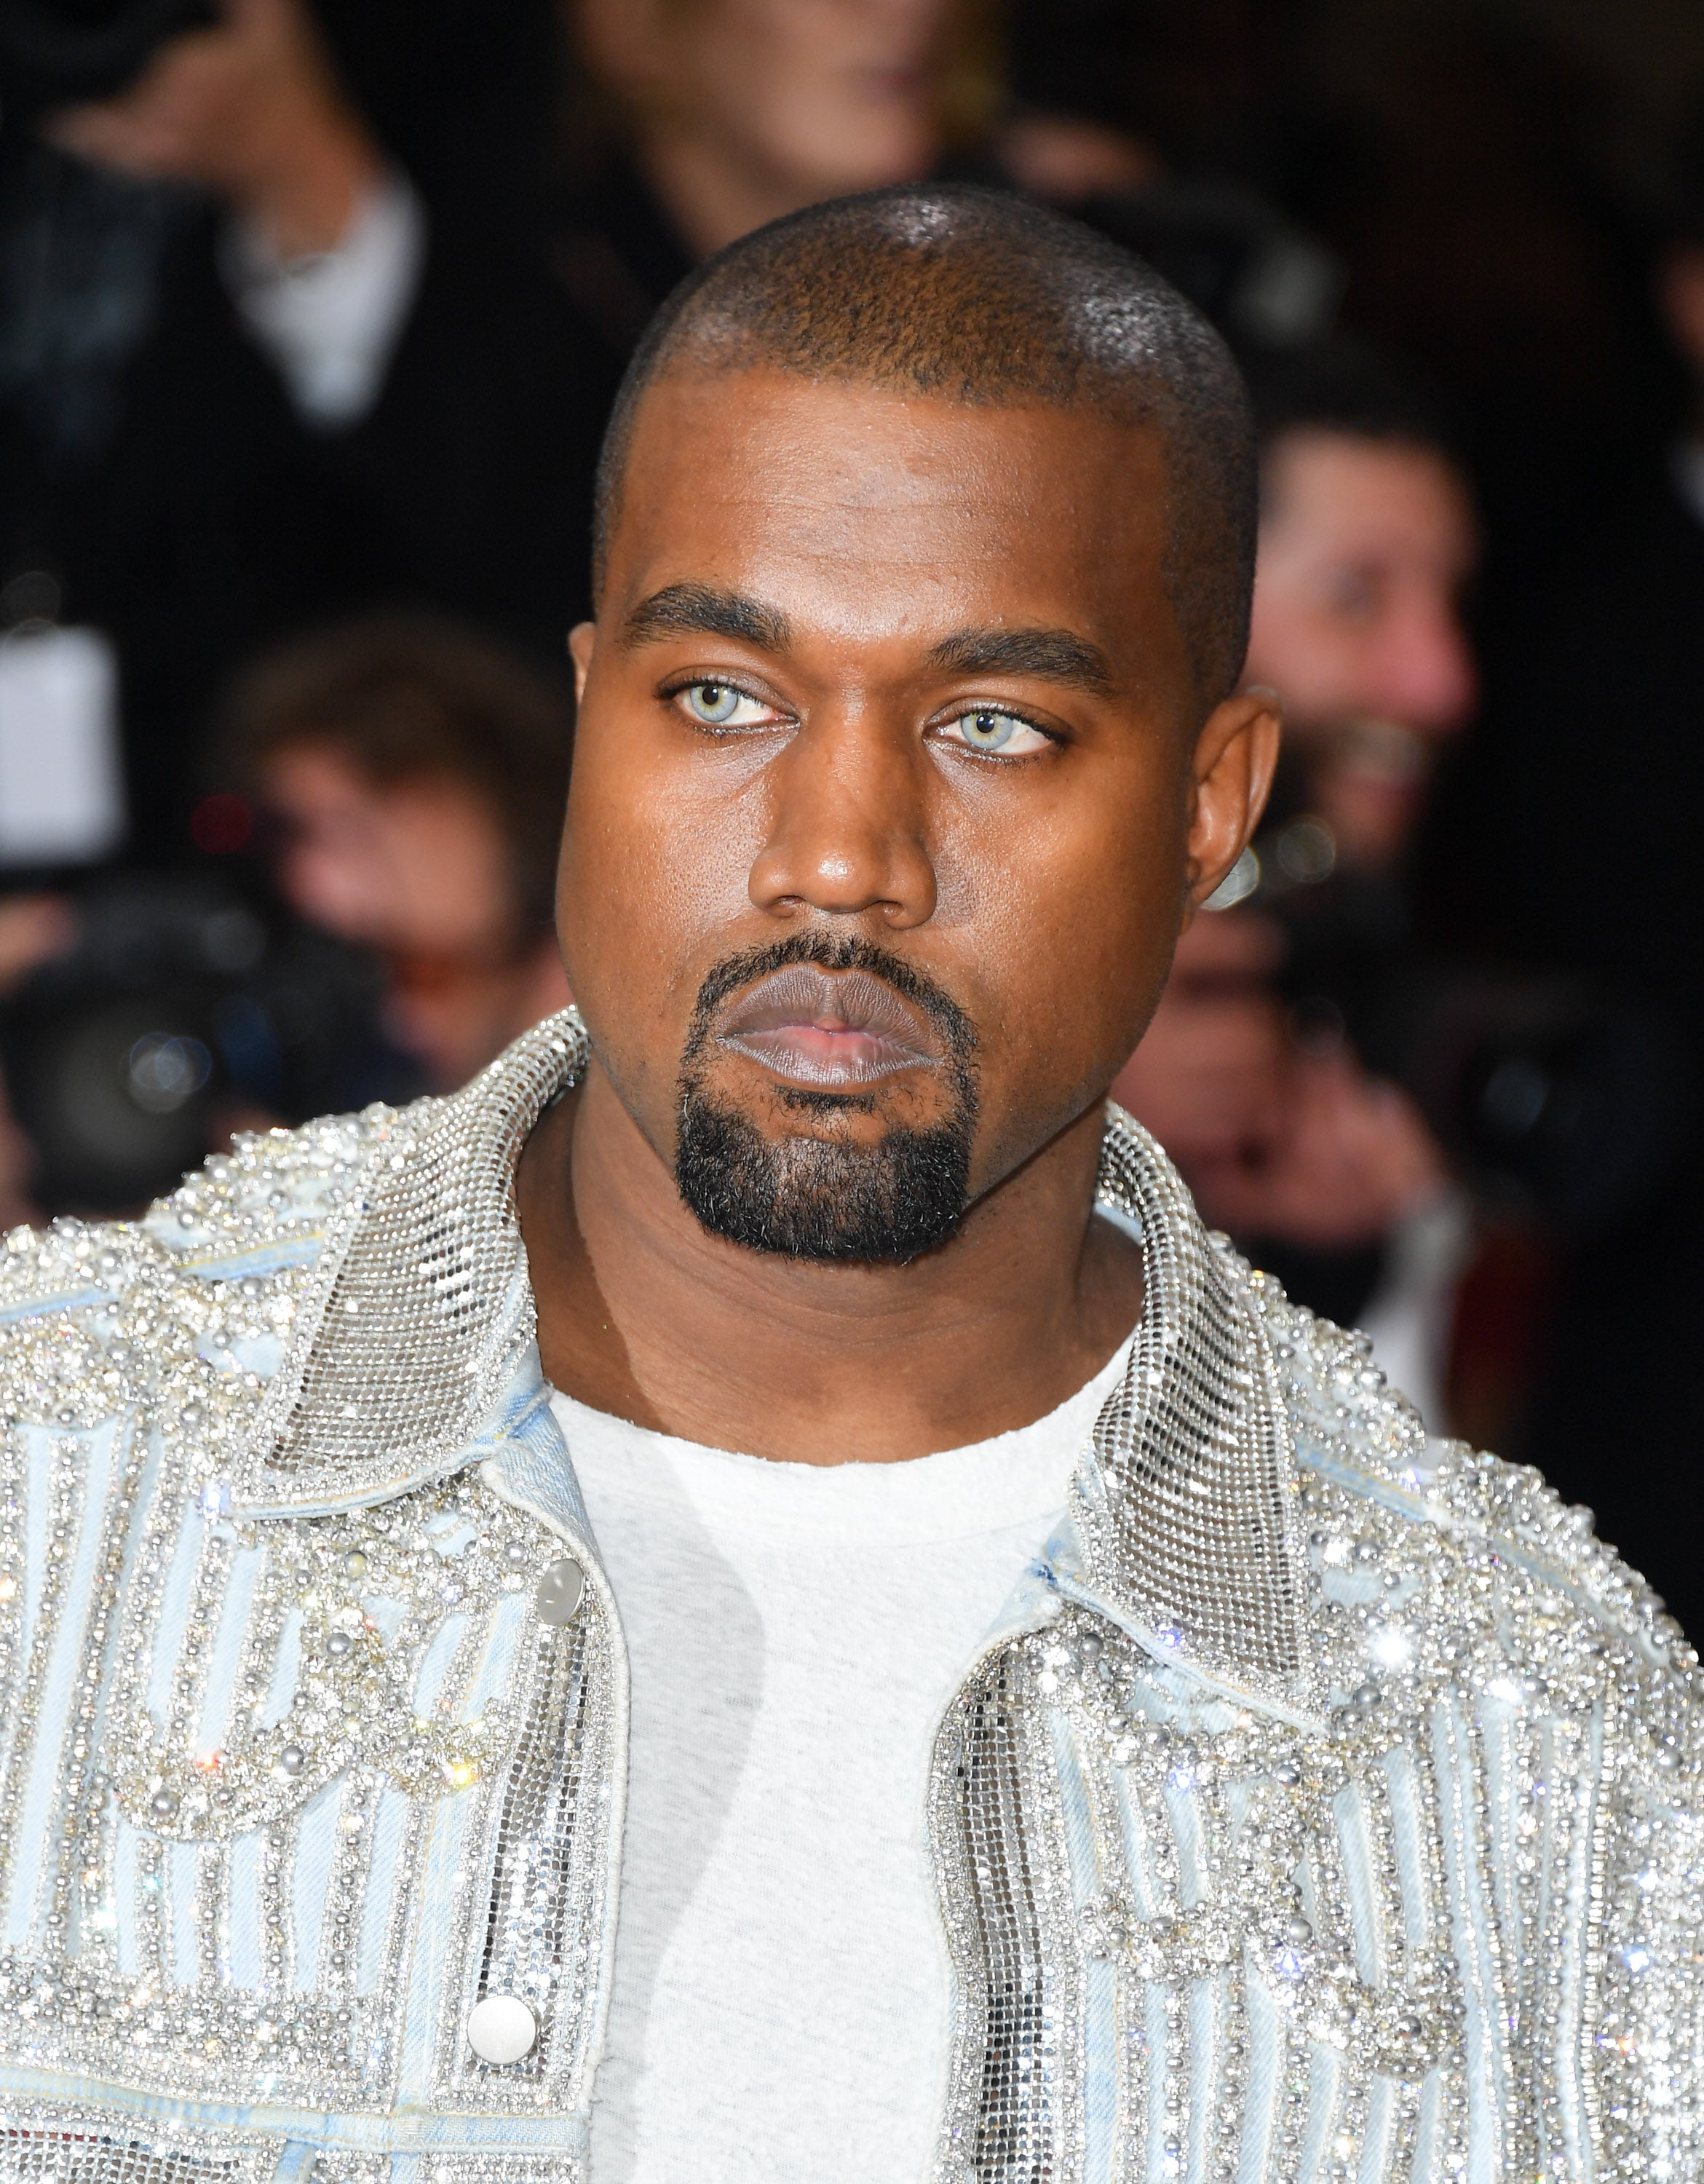 Kanye West Wore Blue Contacts to the Met Gala, Social Media Immediately Responds